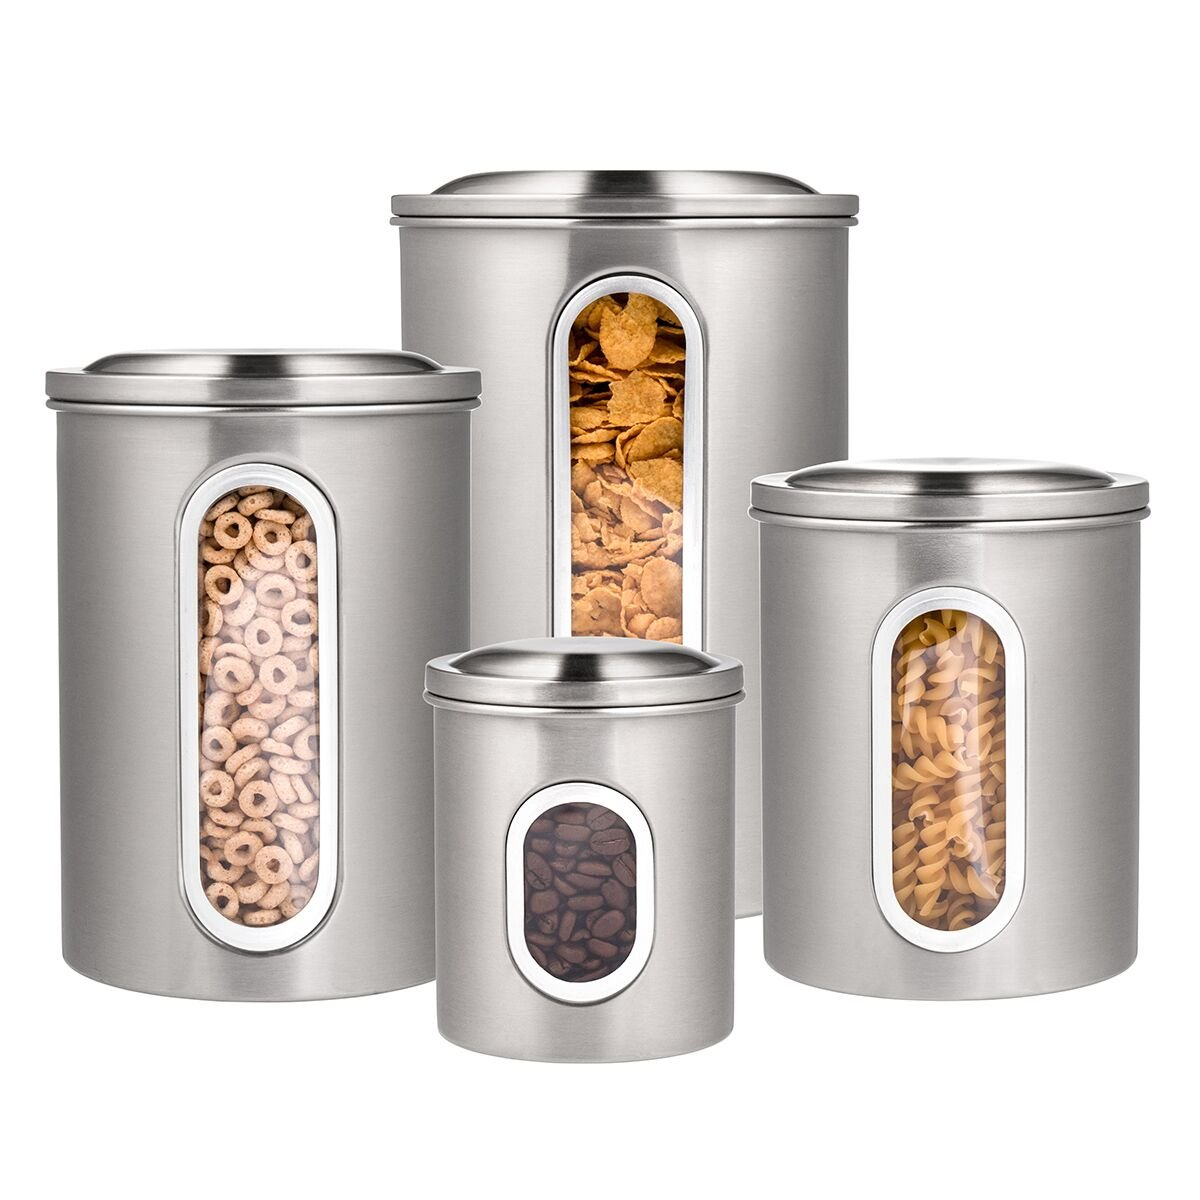 stainless steel canister sets kitchen deppon 4 pieces stainless steel canisters set airtight storage cans for kitchen 6919661265762 ebay 9696